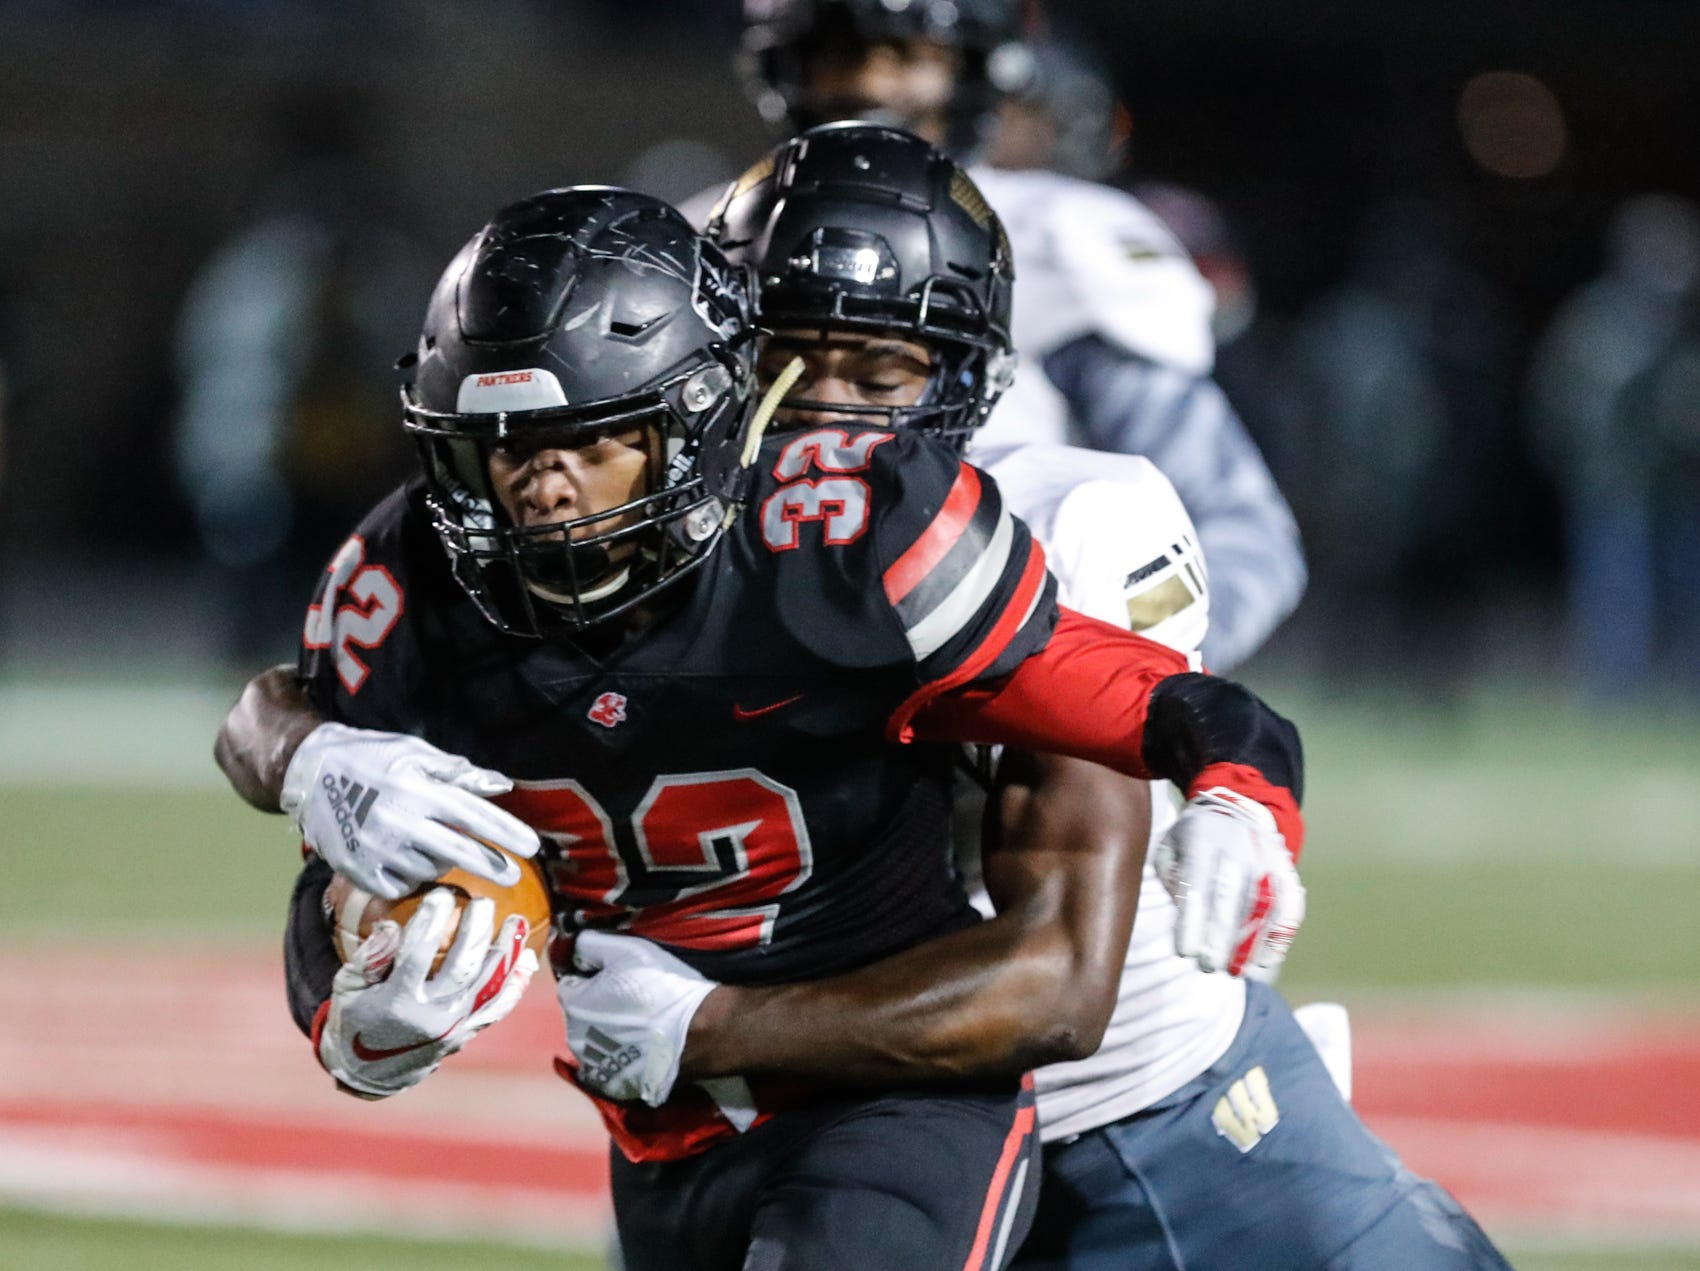 The North Central High School Panther's running back Alexander Tarver (32), is tackled by Warren Central High School Warrior's Frederick Talley (1), during a regional finals game against the Warren Central High School Warriors at North Central High School on Friday, Nov. 9, 2018.